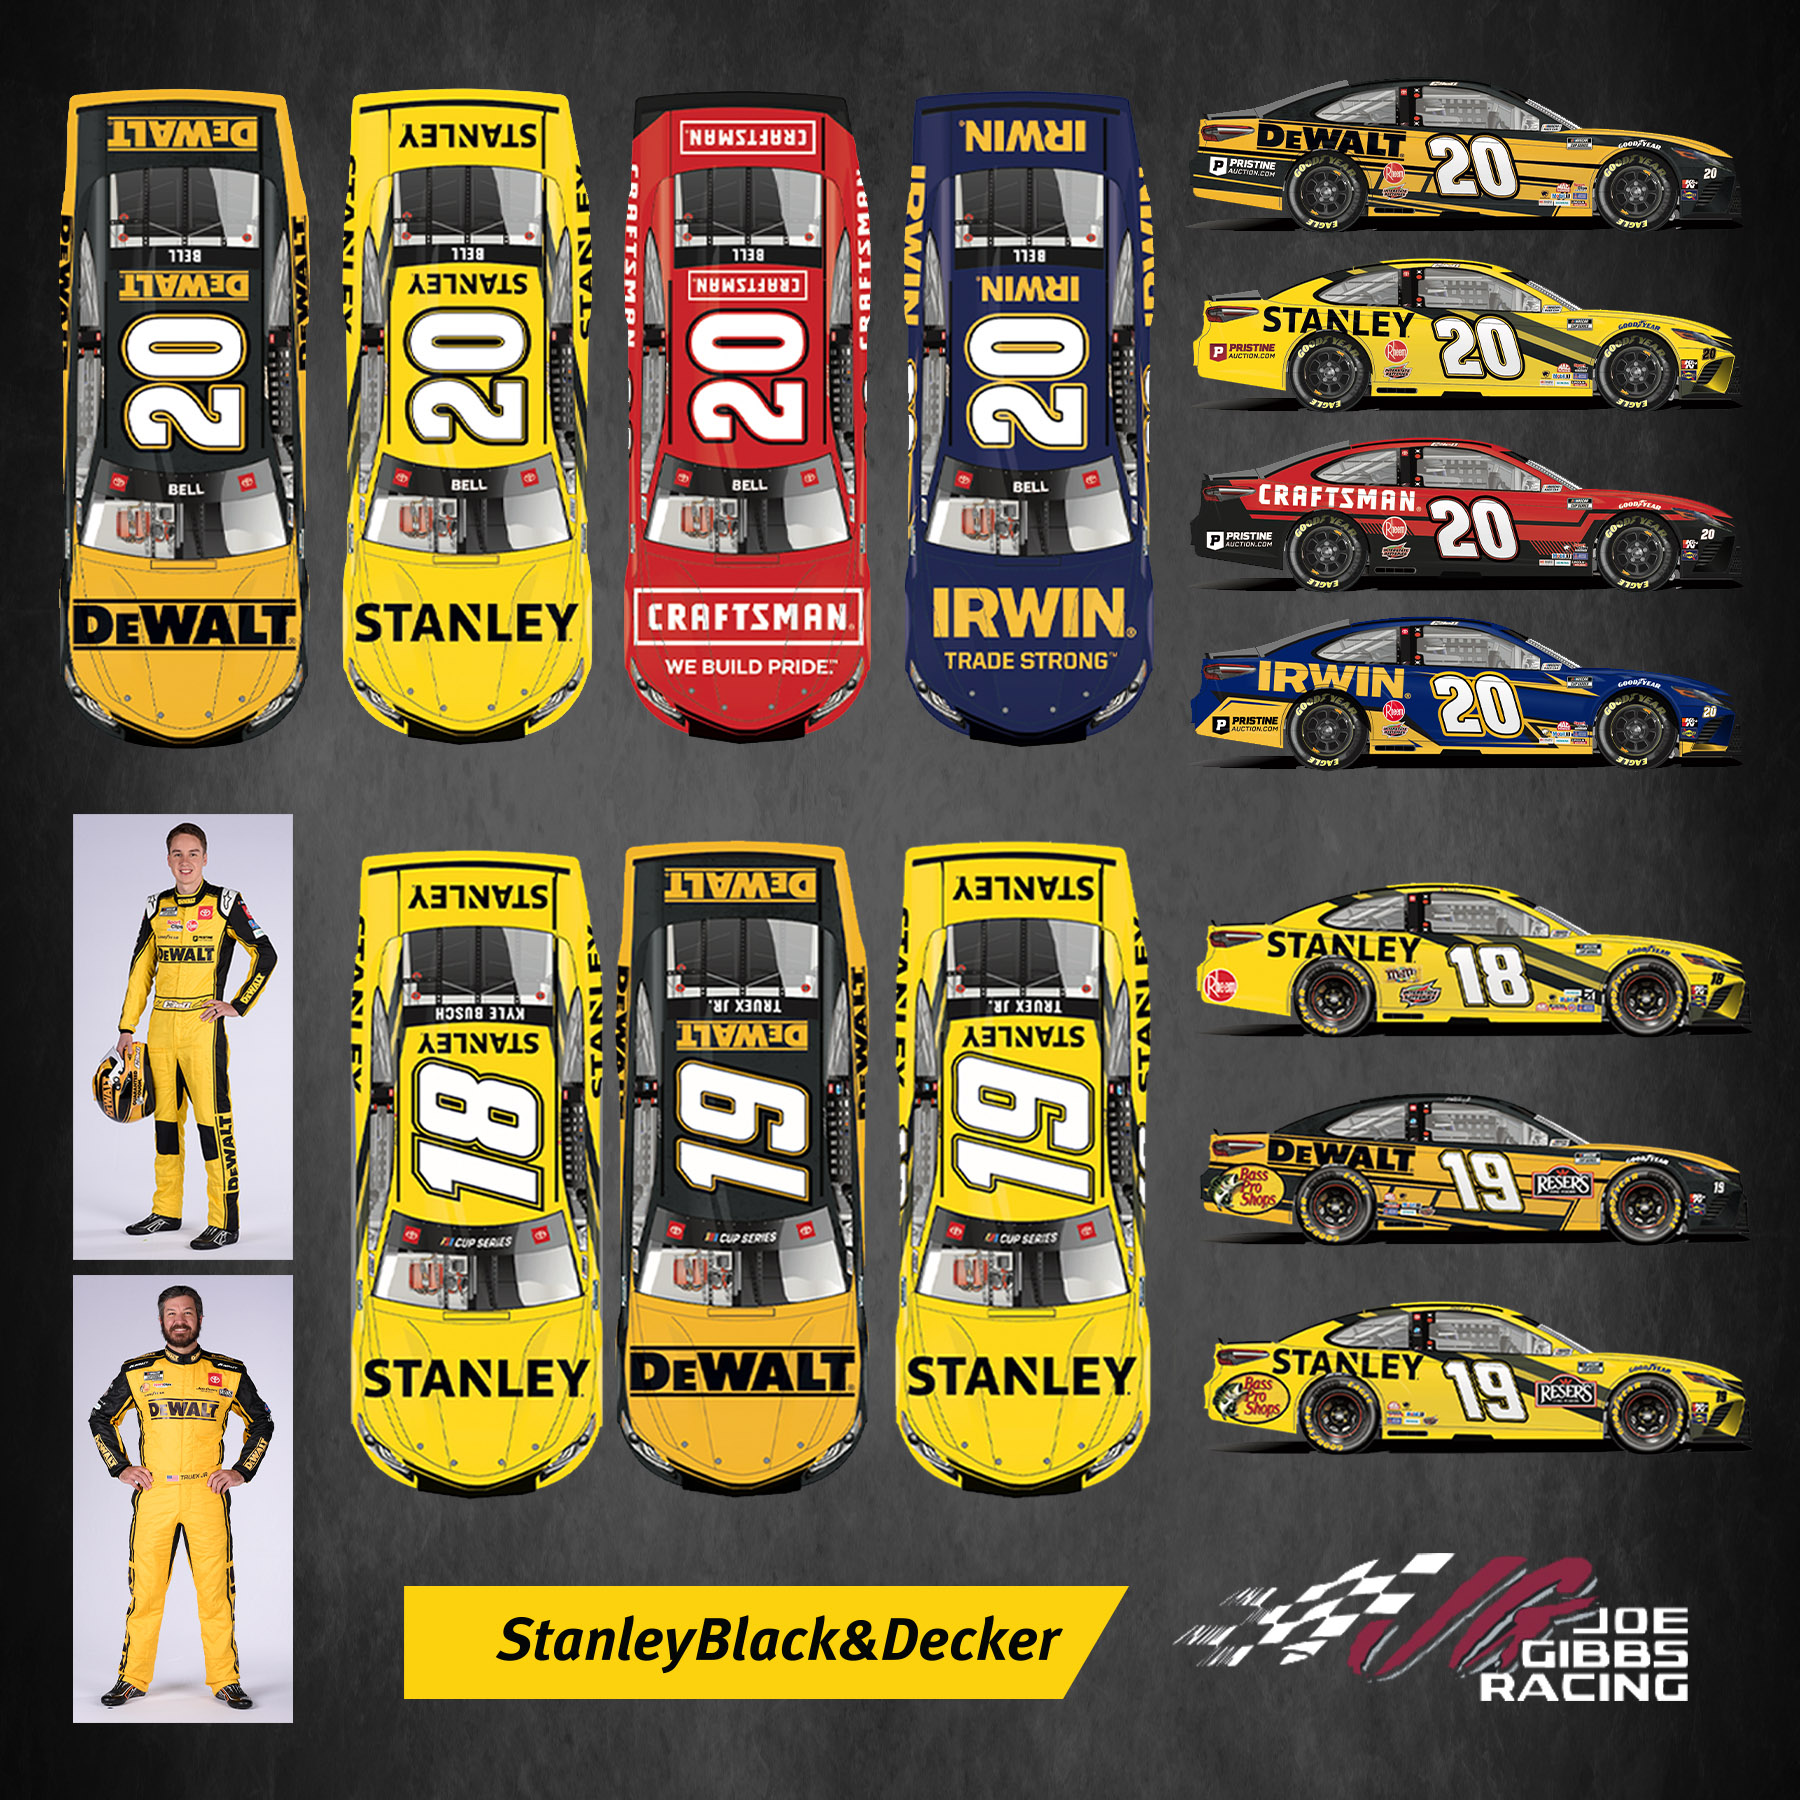 Stanley Black & Decker Tools Up for the 2021 NASCAR Season